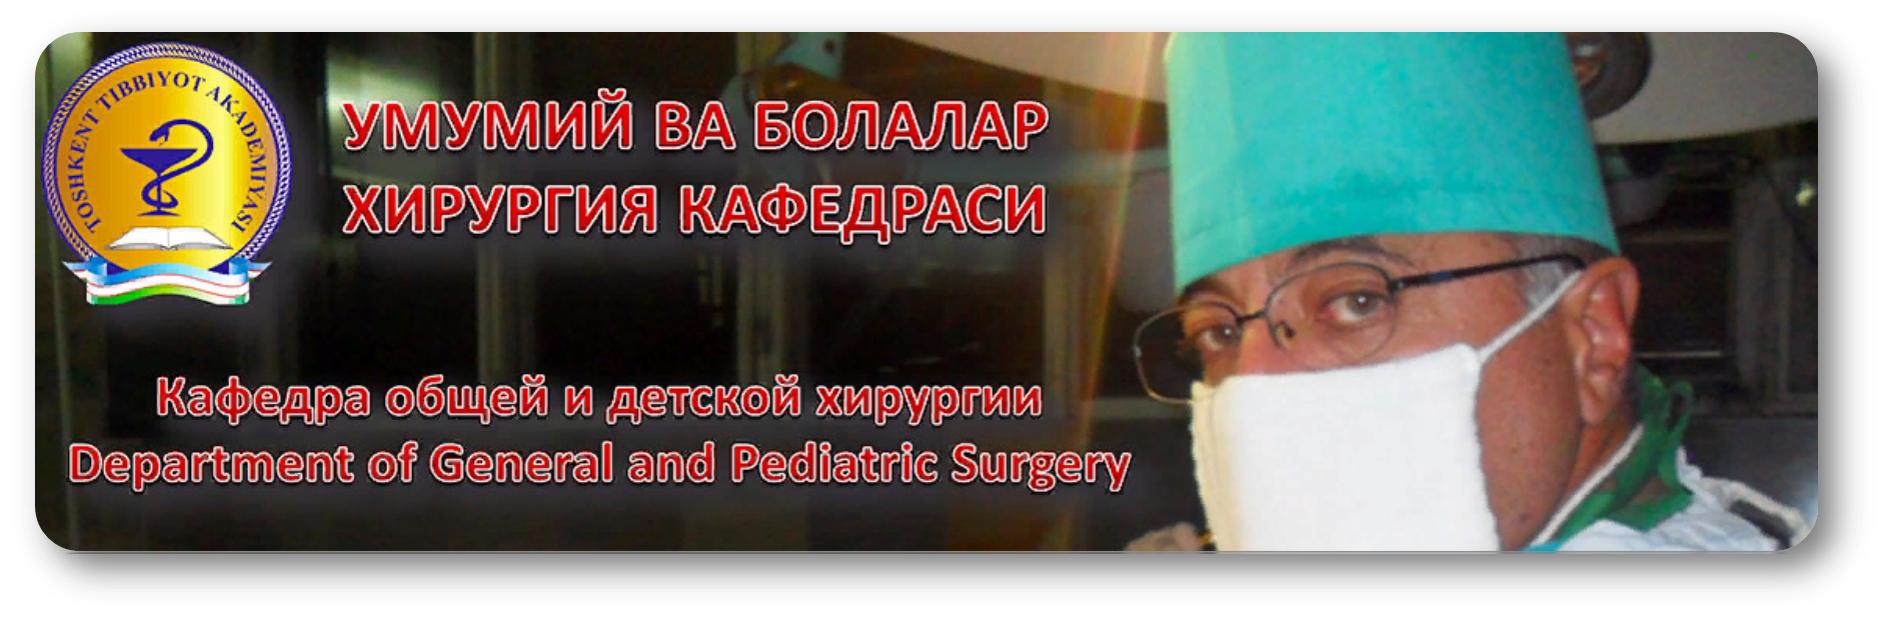 Department of General and Pediatric Surgery